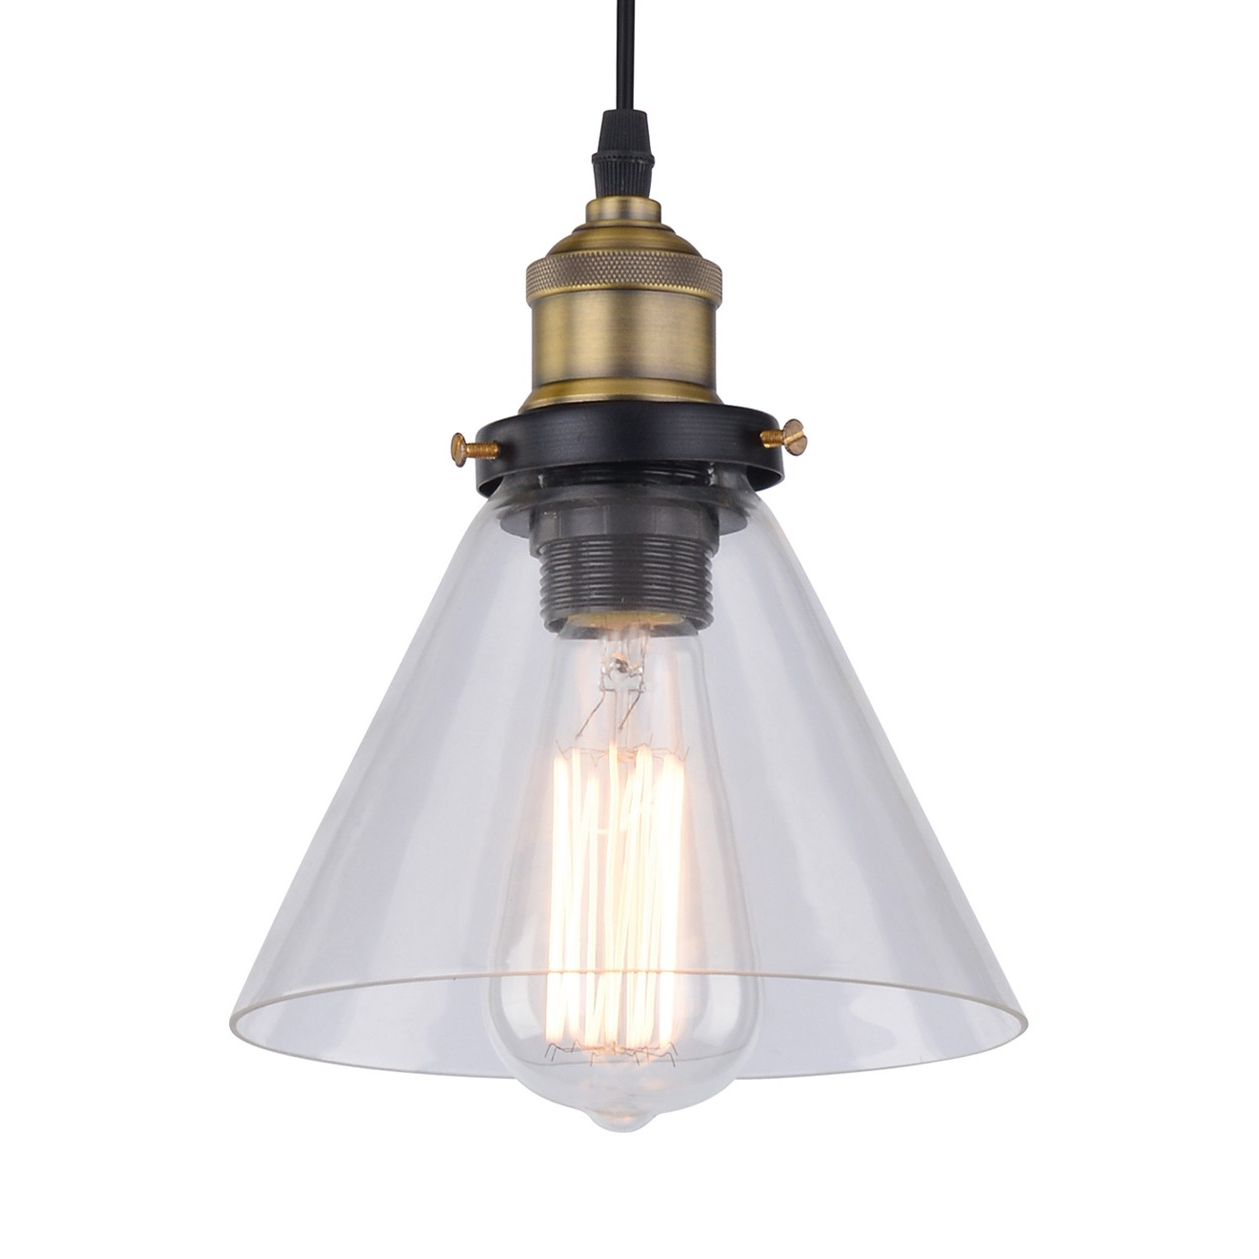 Guro 1 Light Cone Pendants In Fashionable Britop Conrad Cone Ceiling Pendant Light (View 7 of 25)